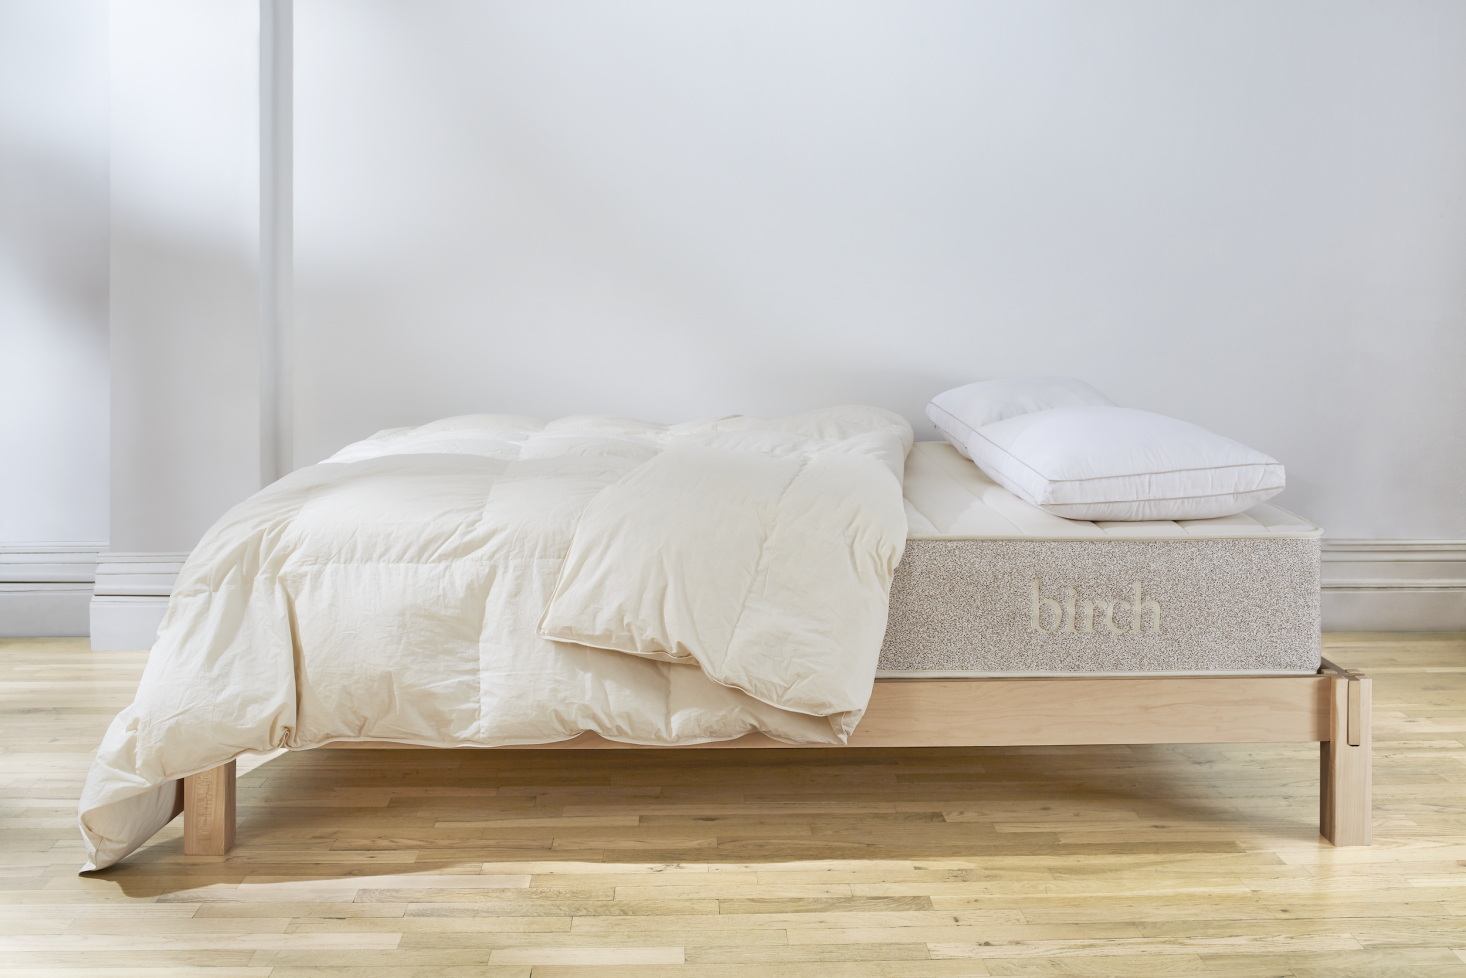 The mattress is made from sustainably sourced organic wool from independent farms in New Zealand, each compliant with the PGC Wrightson Wool Integrity Program to guarantee fair farming practices. The mattress is pictured here on the company's Birch Frame, made with 0 percent Appalachian hardwood bed rails, solid Southern yellow pine slats, and Appalachian maple legs; assembly is completely tool-less ($549 for the queen size).